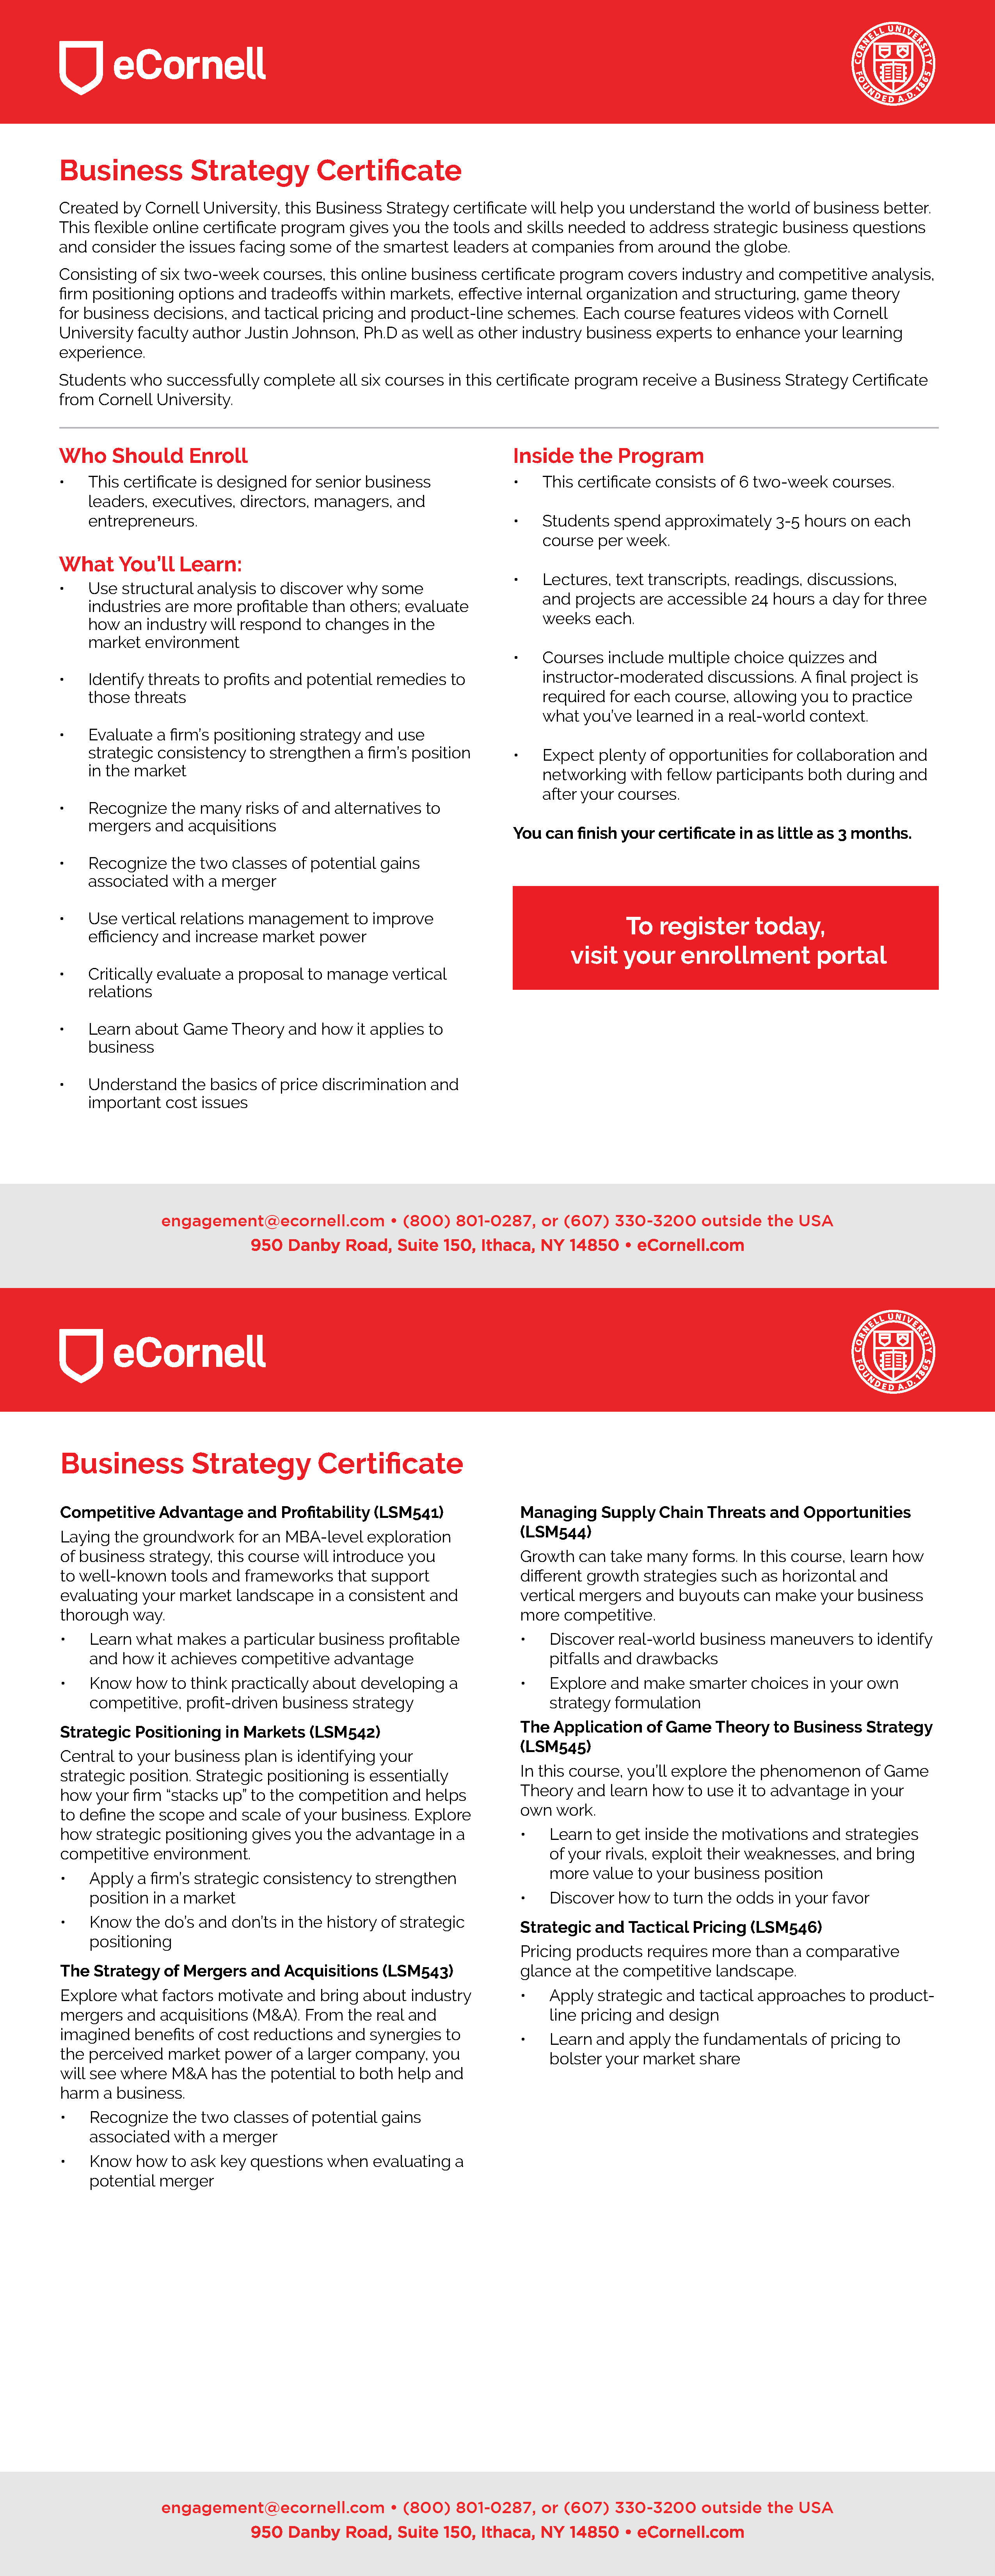 Business Strategy Flyer for Corporations